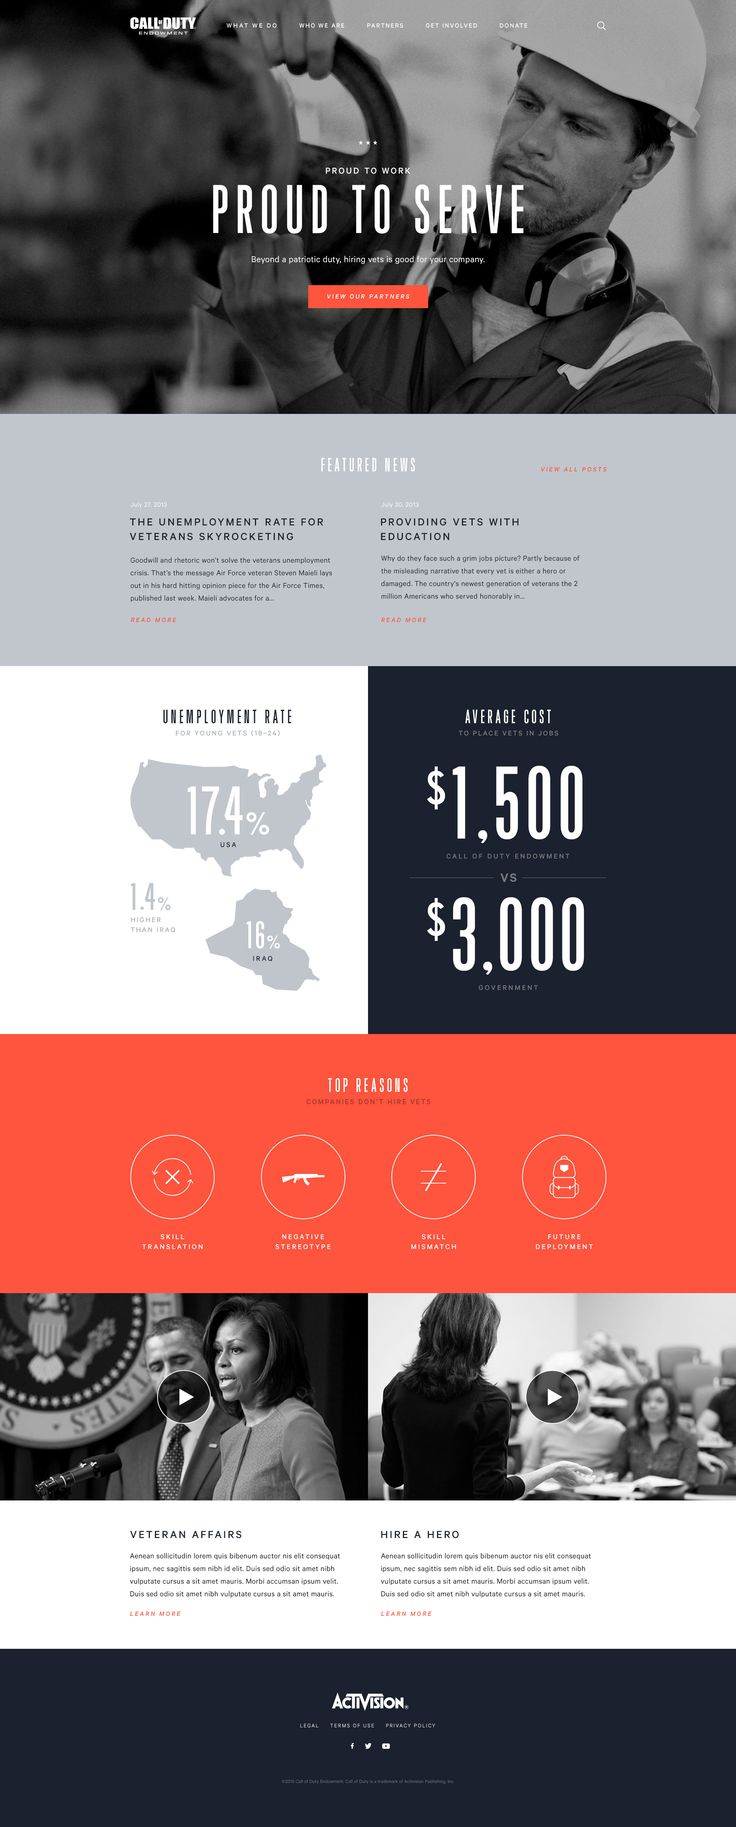 Proud to Serve Web Design Page by Lani Choi #bold #data #photos #clean #minimal #masculine #gray #navy #red #orange